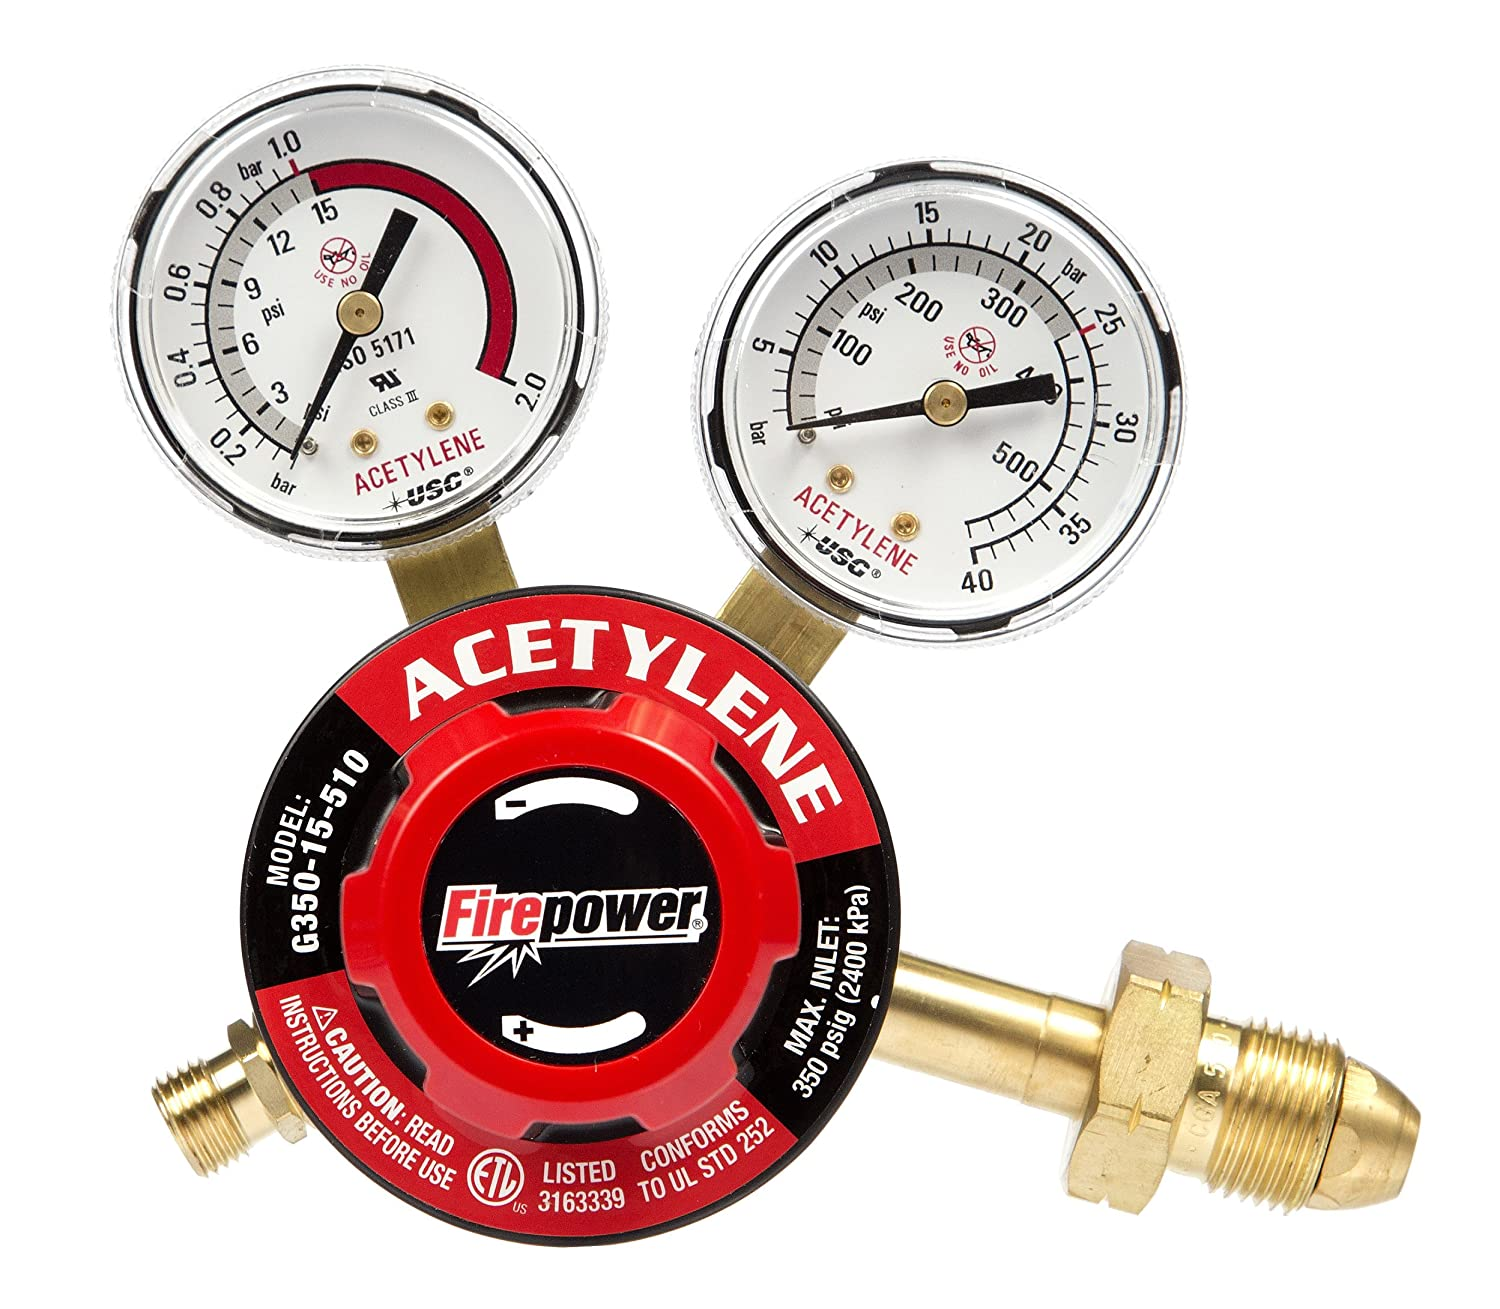 Firepower 0781-9830 250 Series OxyFuel Acetylene Regulator for Tips with a 6-Inch Cutting Capacity